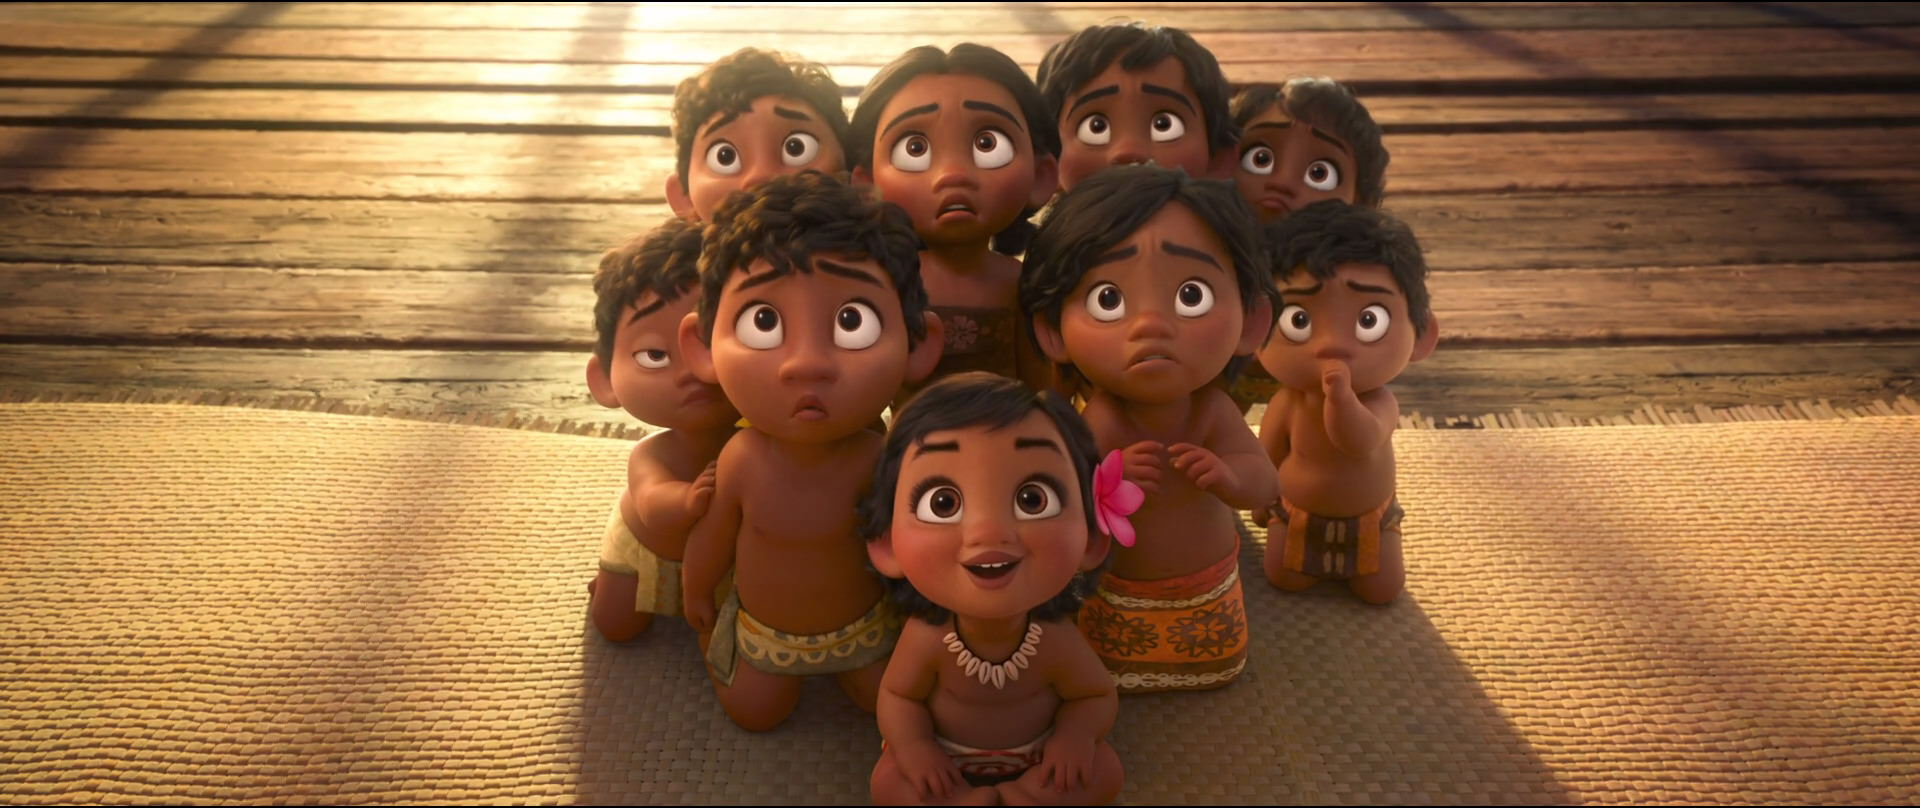 File:Little young moana.jpg